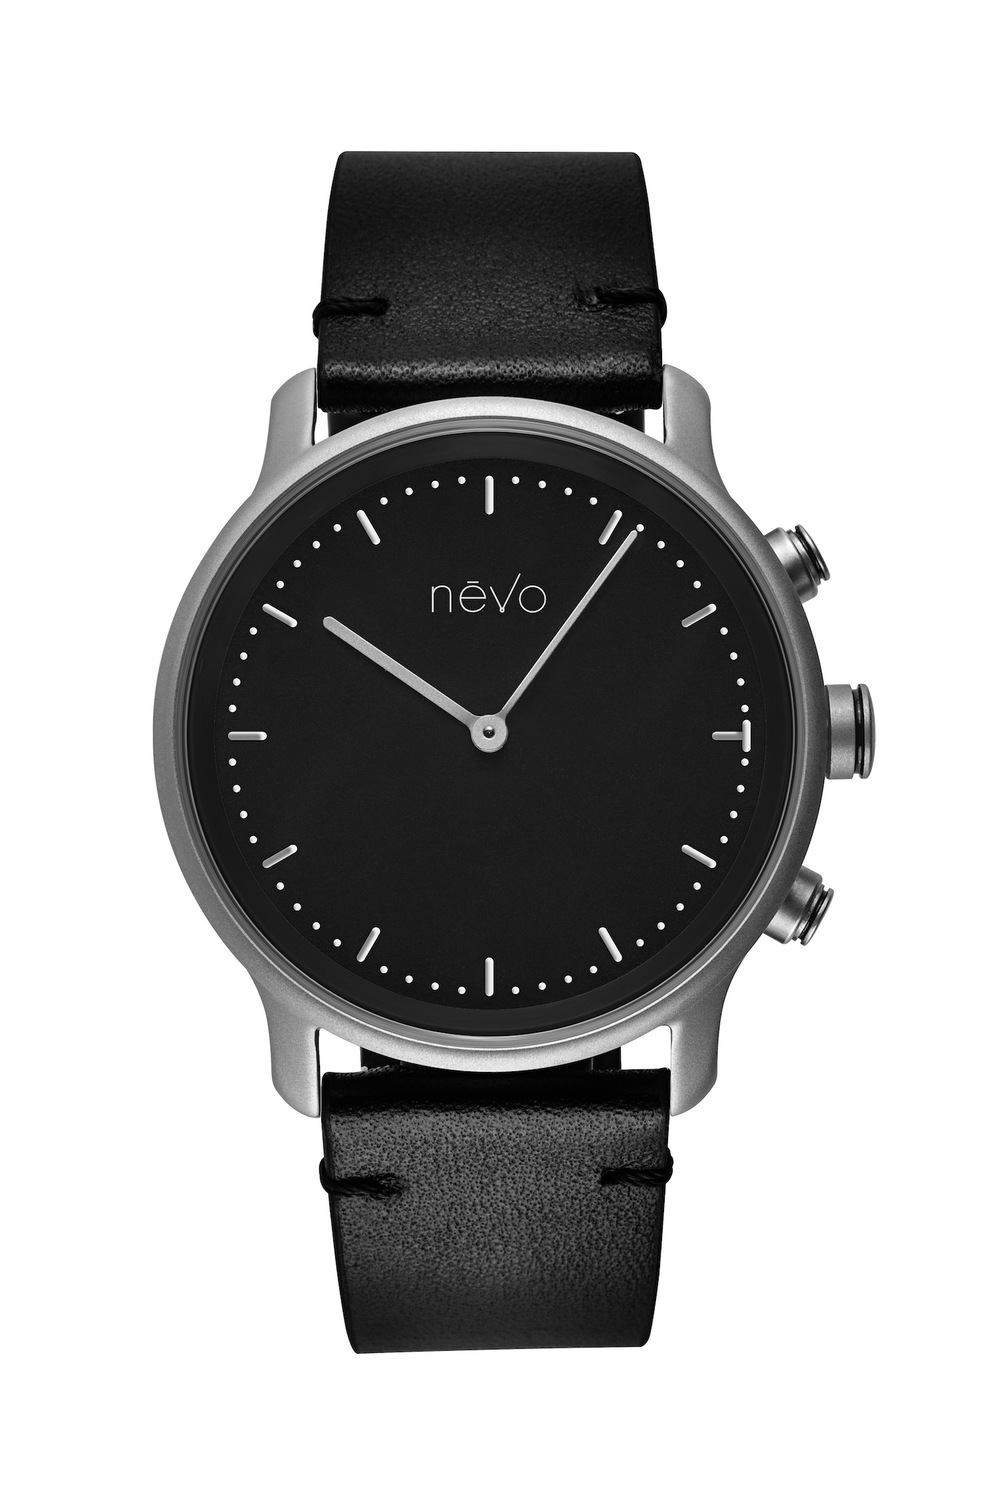 Nevo watch Ravignan